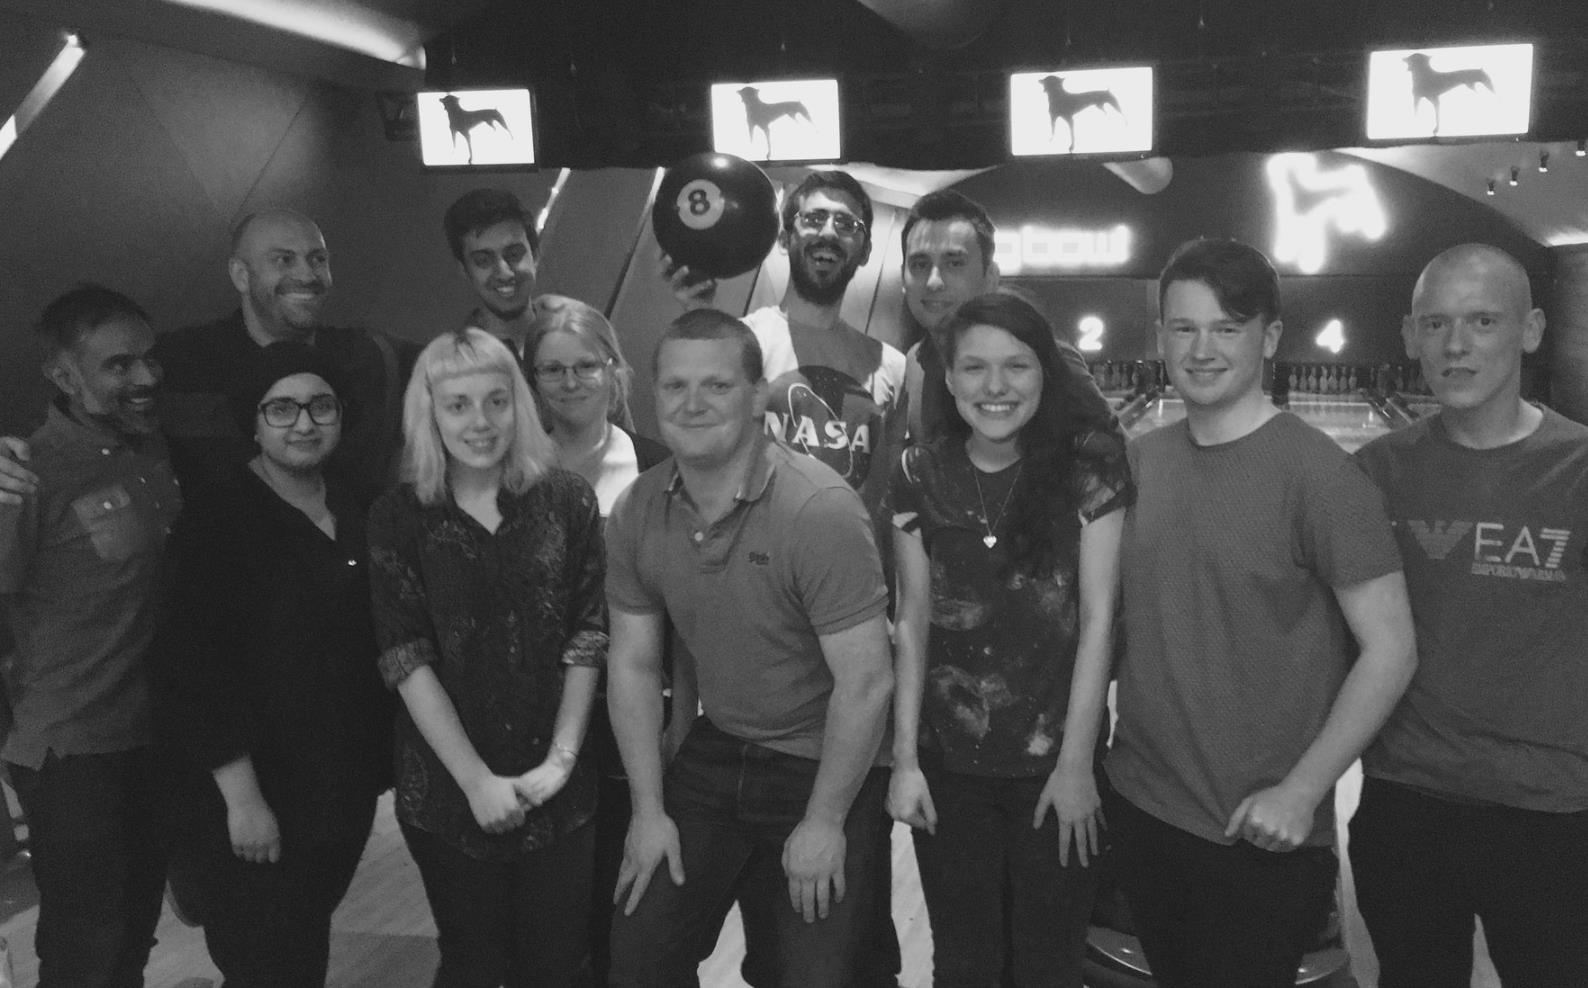 Cohort 1 graduates from Full-Time Coding Bootcamp Manchester